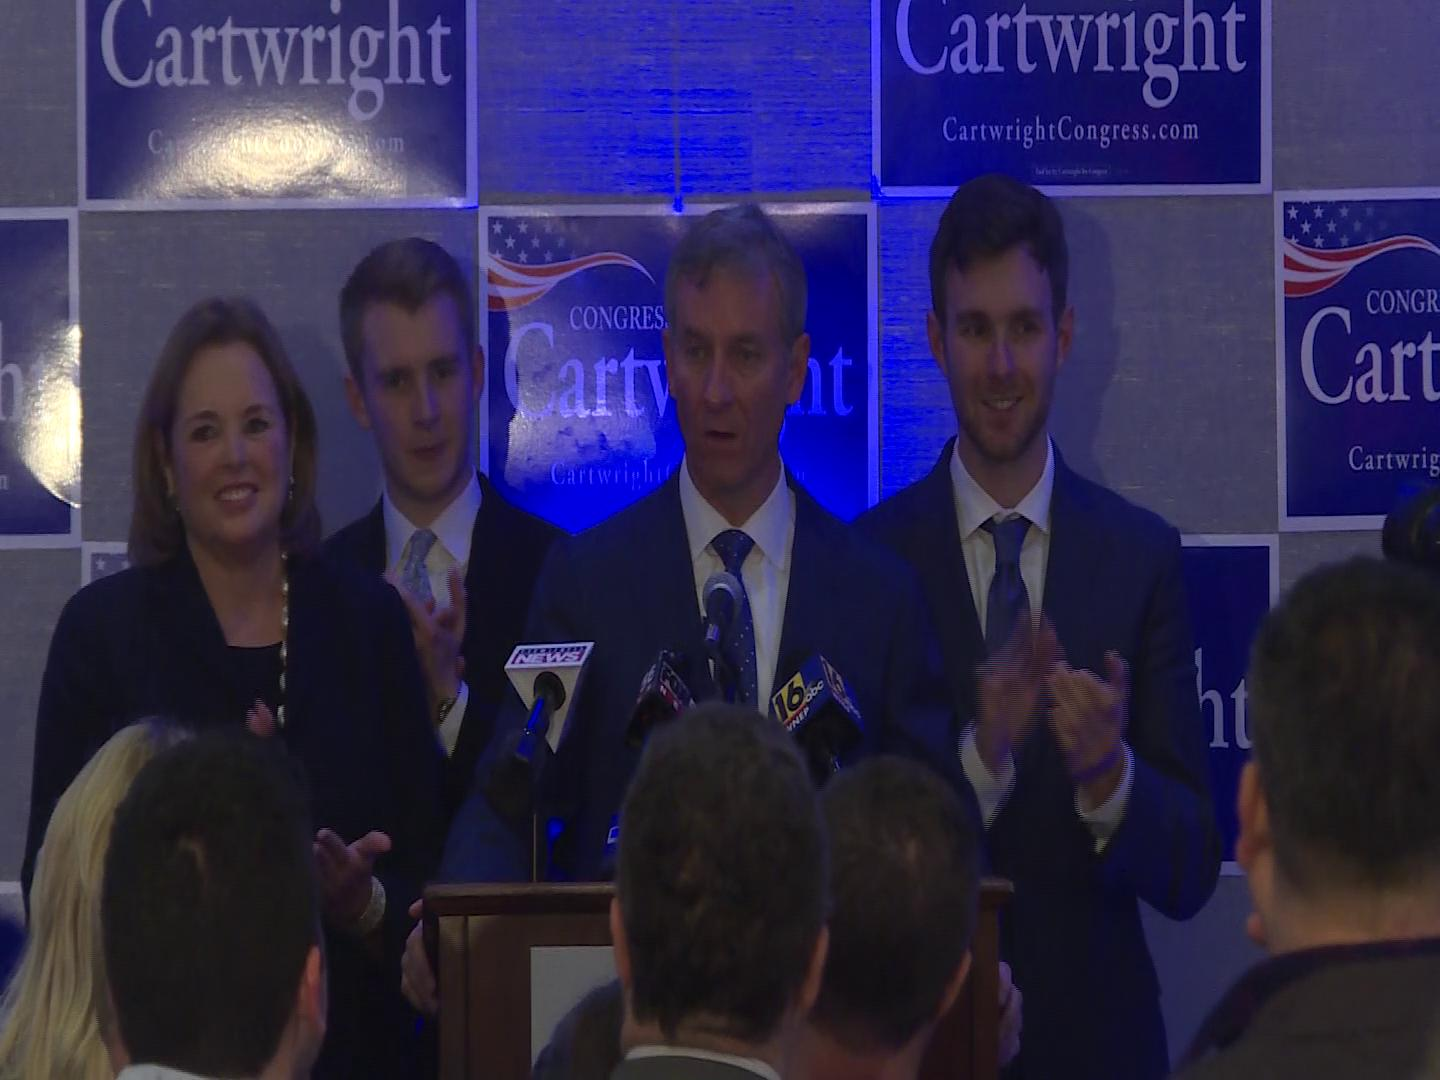 WATCH: Congressman Matt Cartwright's victory speech